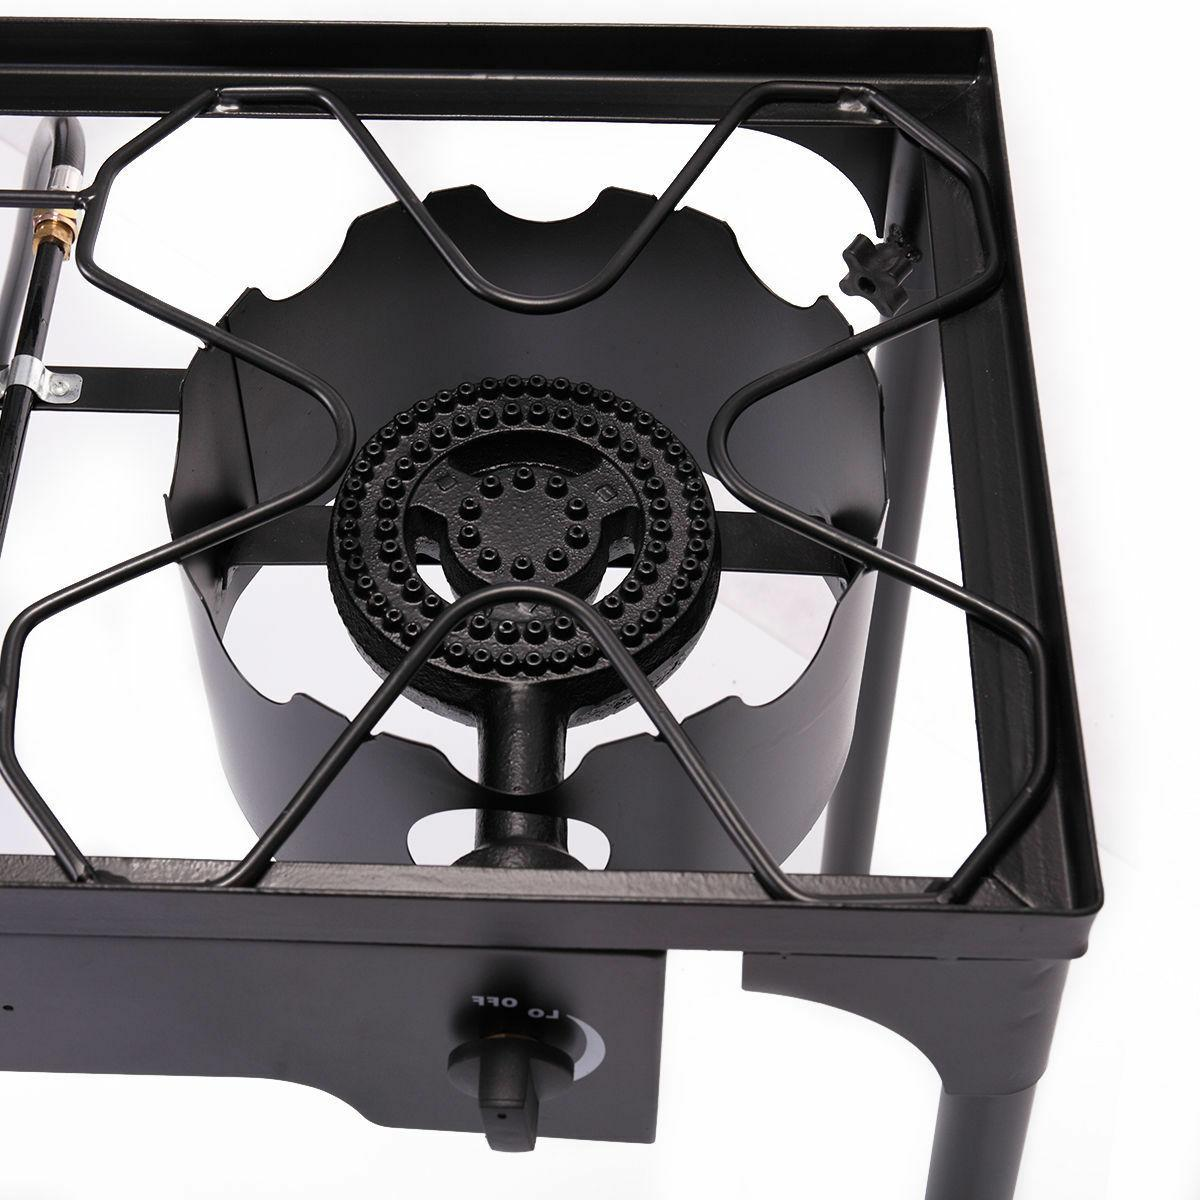 Cooker Outdoor Picnic Stove Grill